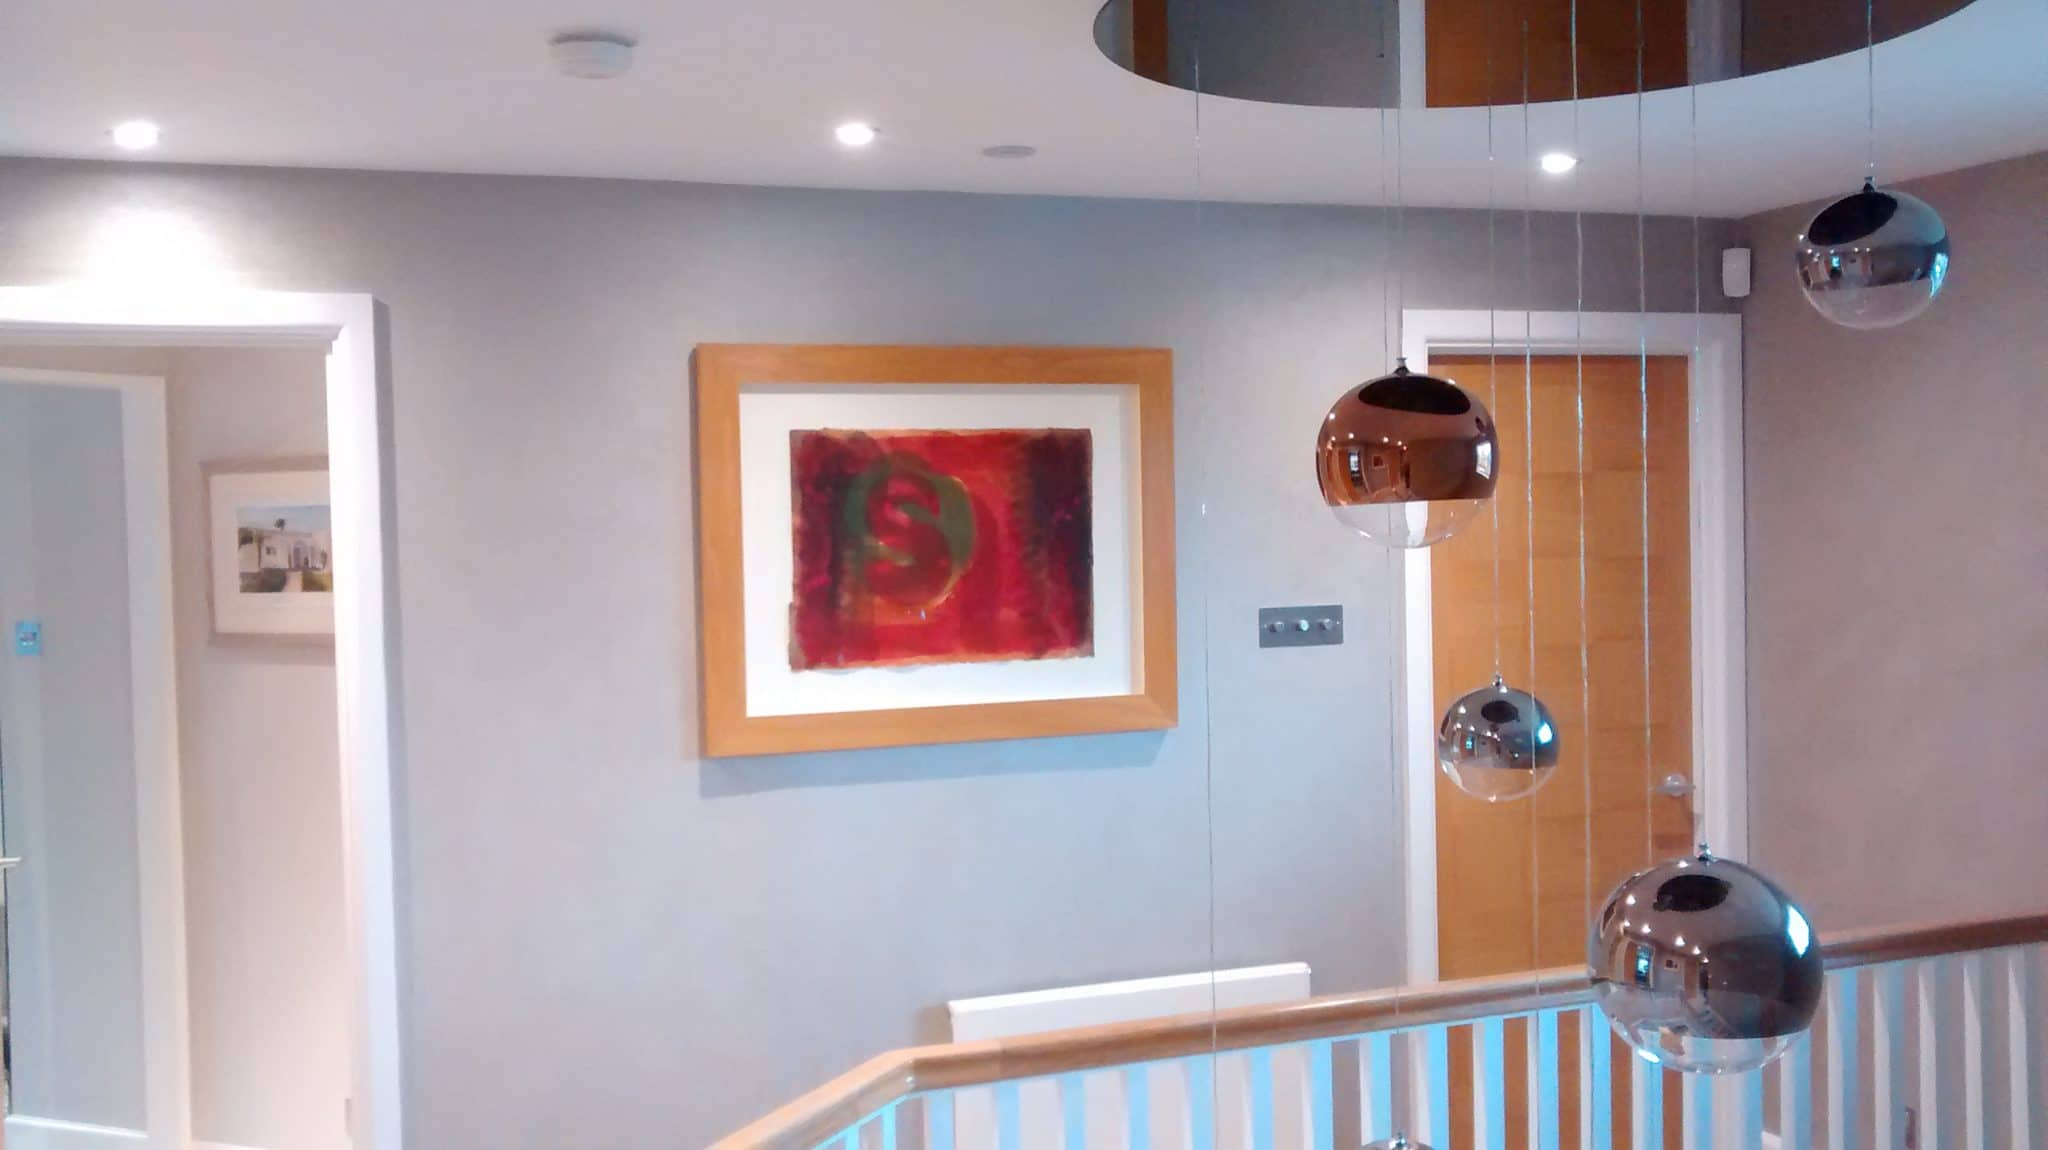 Timber framed picture hung in the stairwell landing of a home in Burgess Hill.